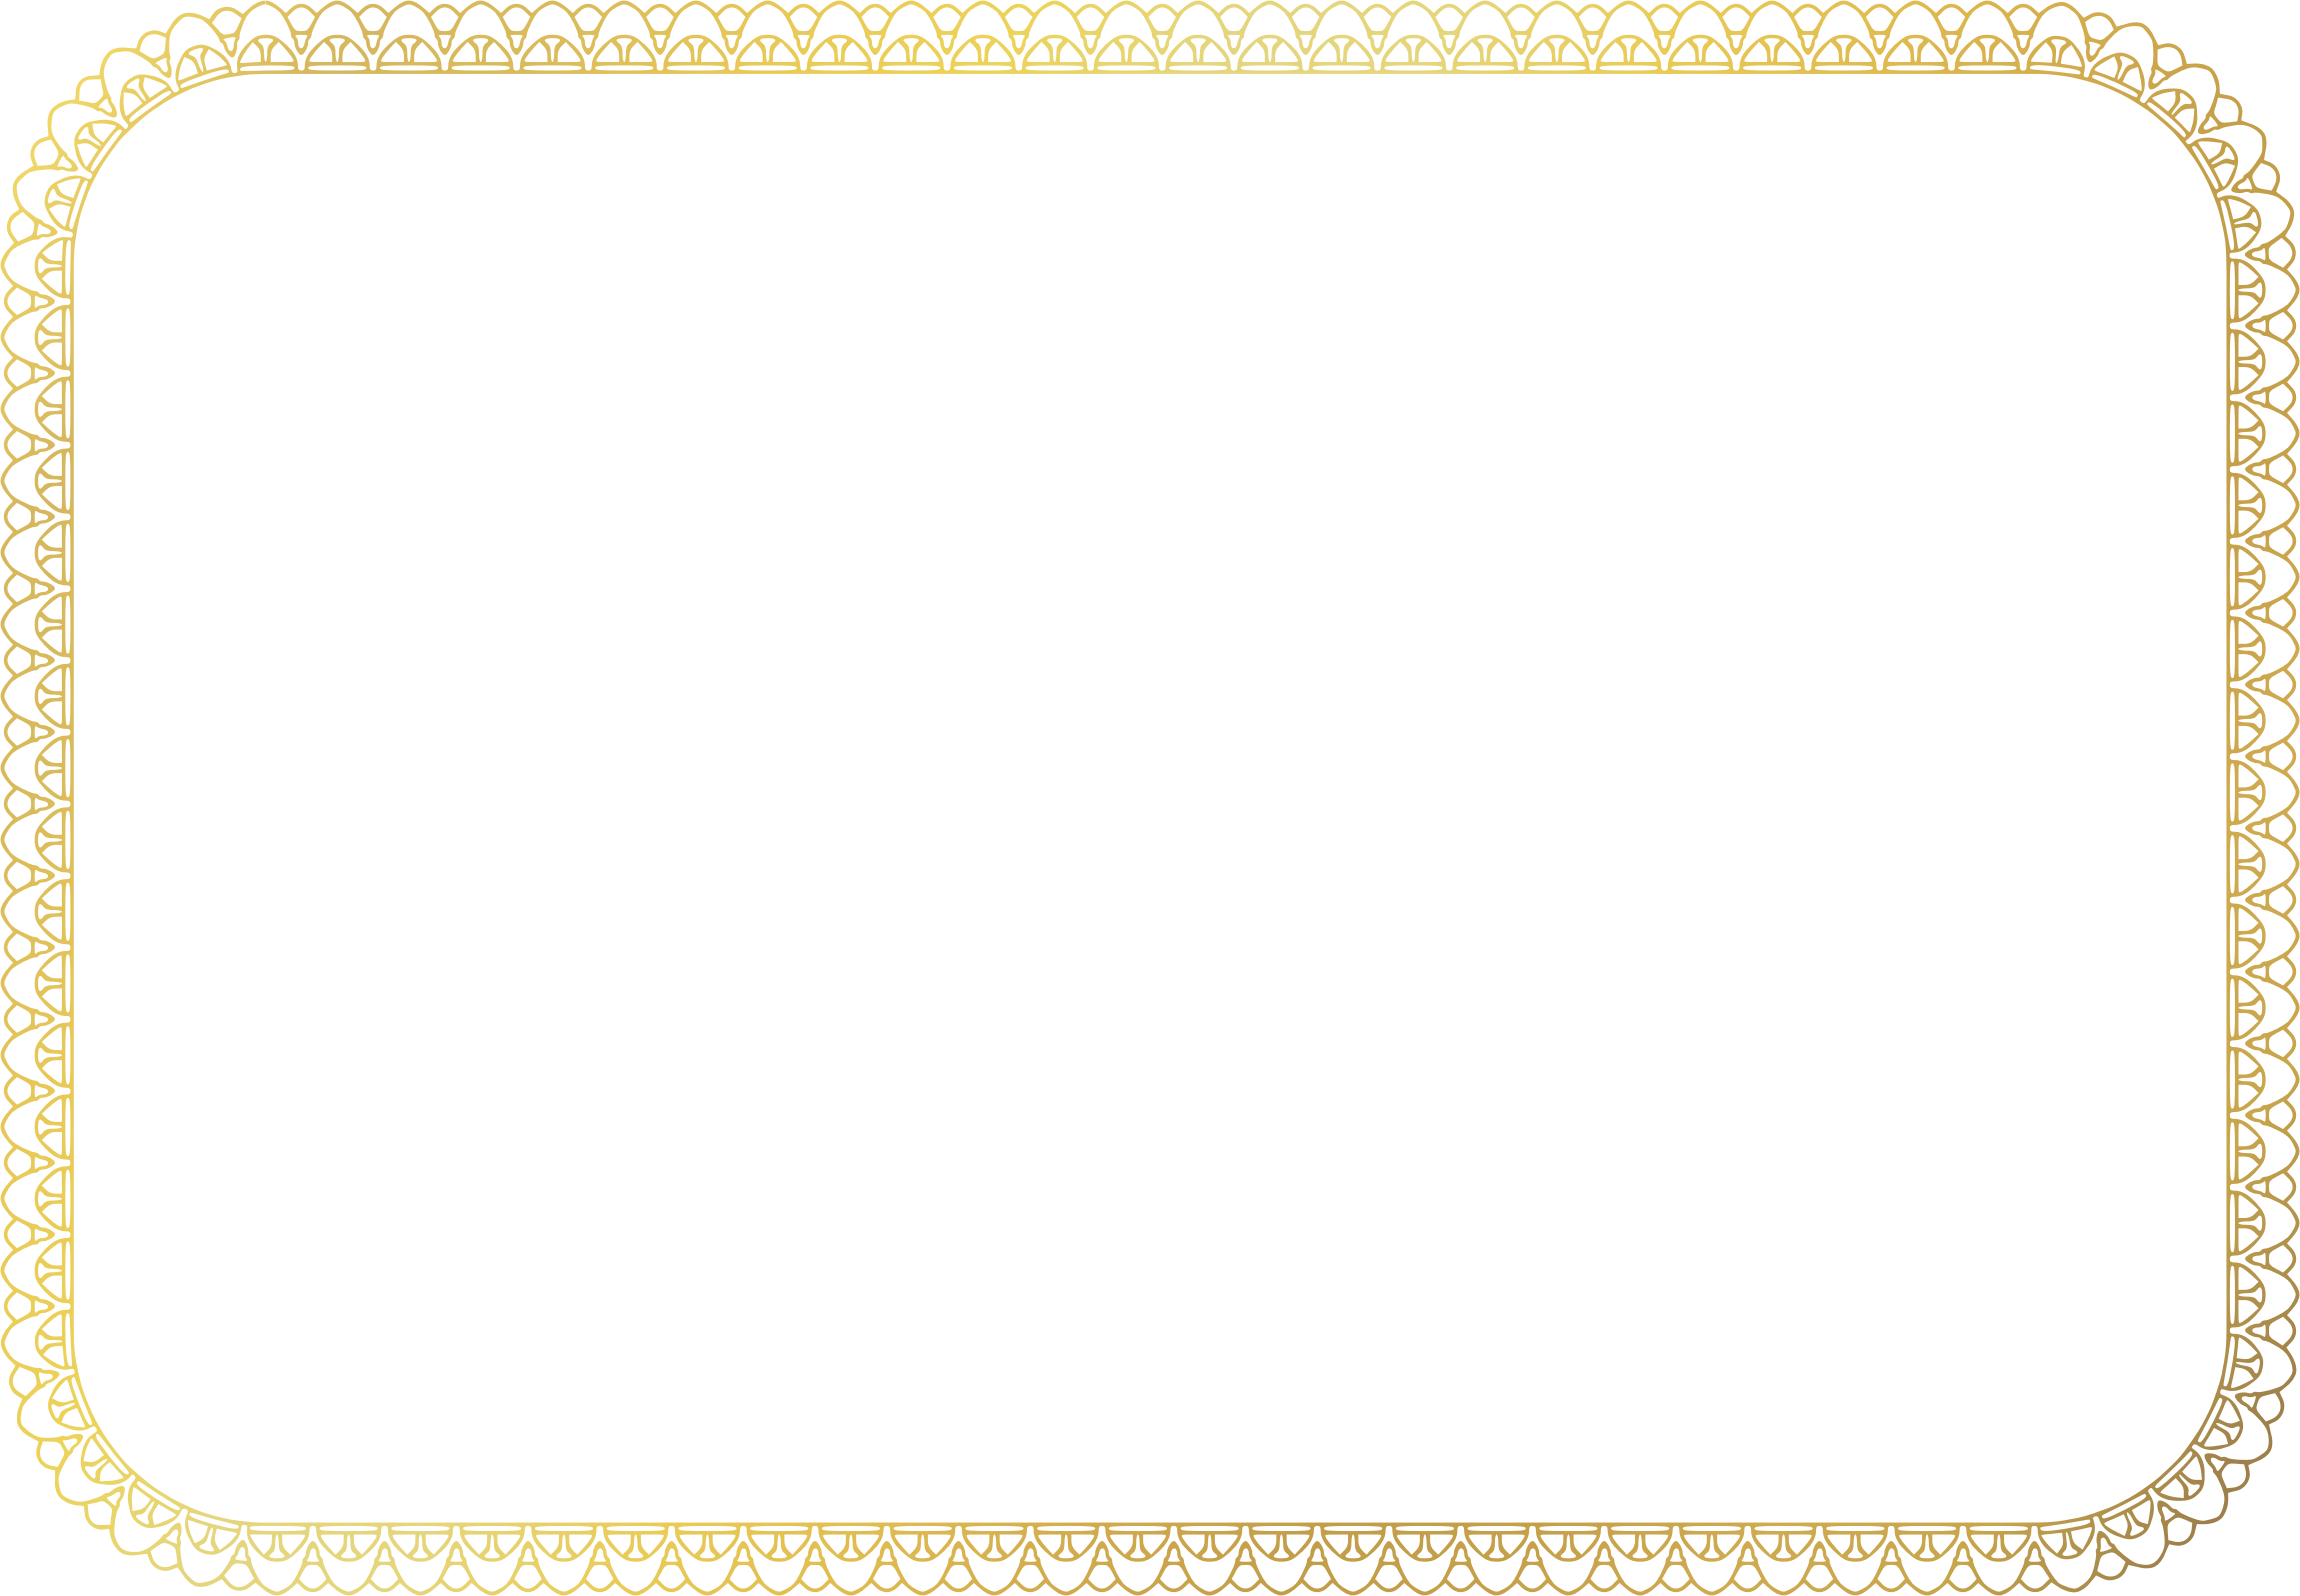 Clipart a size big. Certificate border png